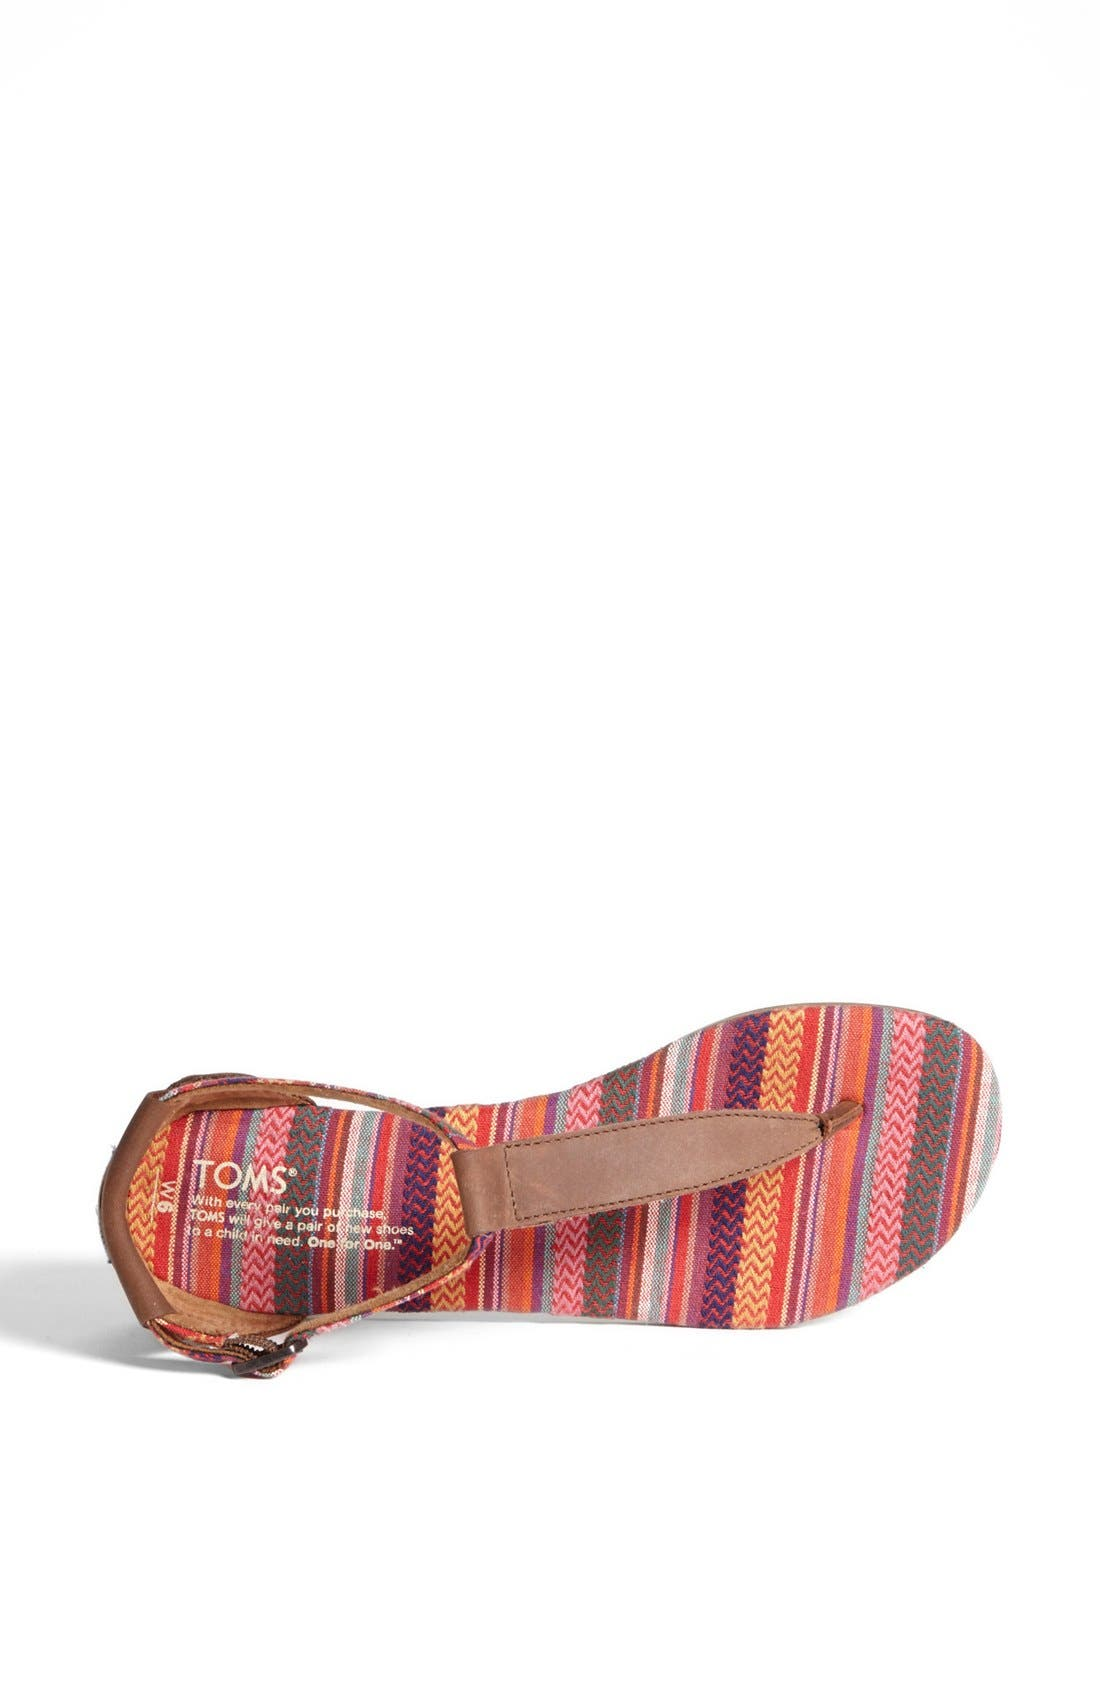 Alternate Image 3  - TOMS 'Playa' T-Strap Flat Sandal